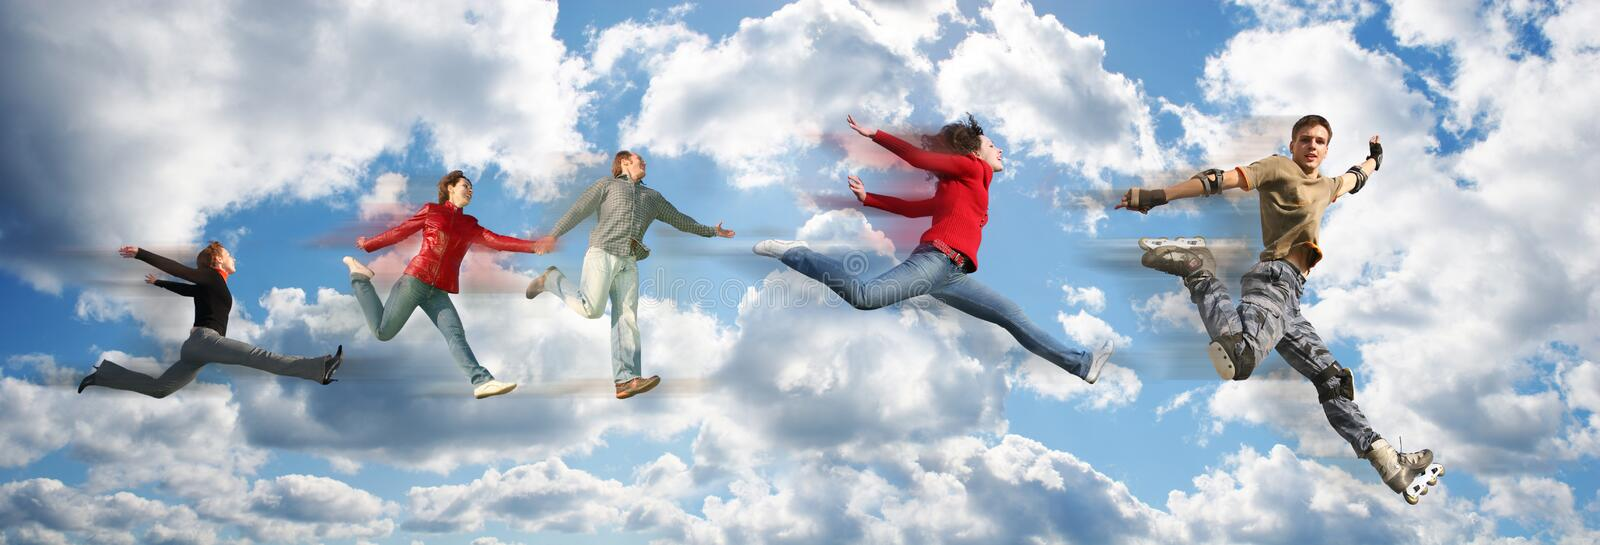 Flying people on sky cloud panorama collage royalty free stock photos